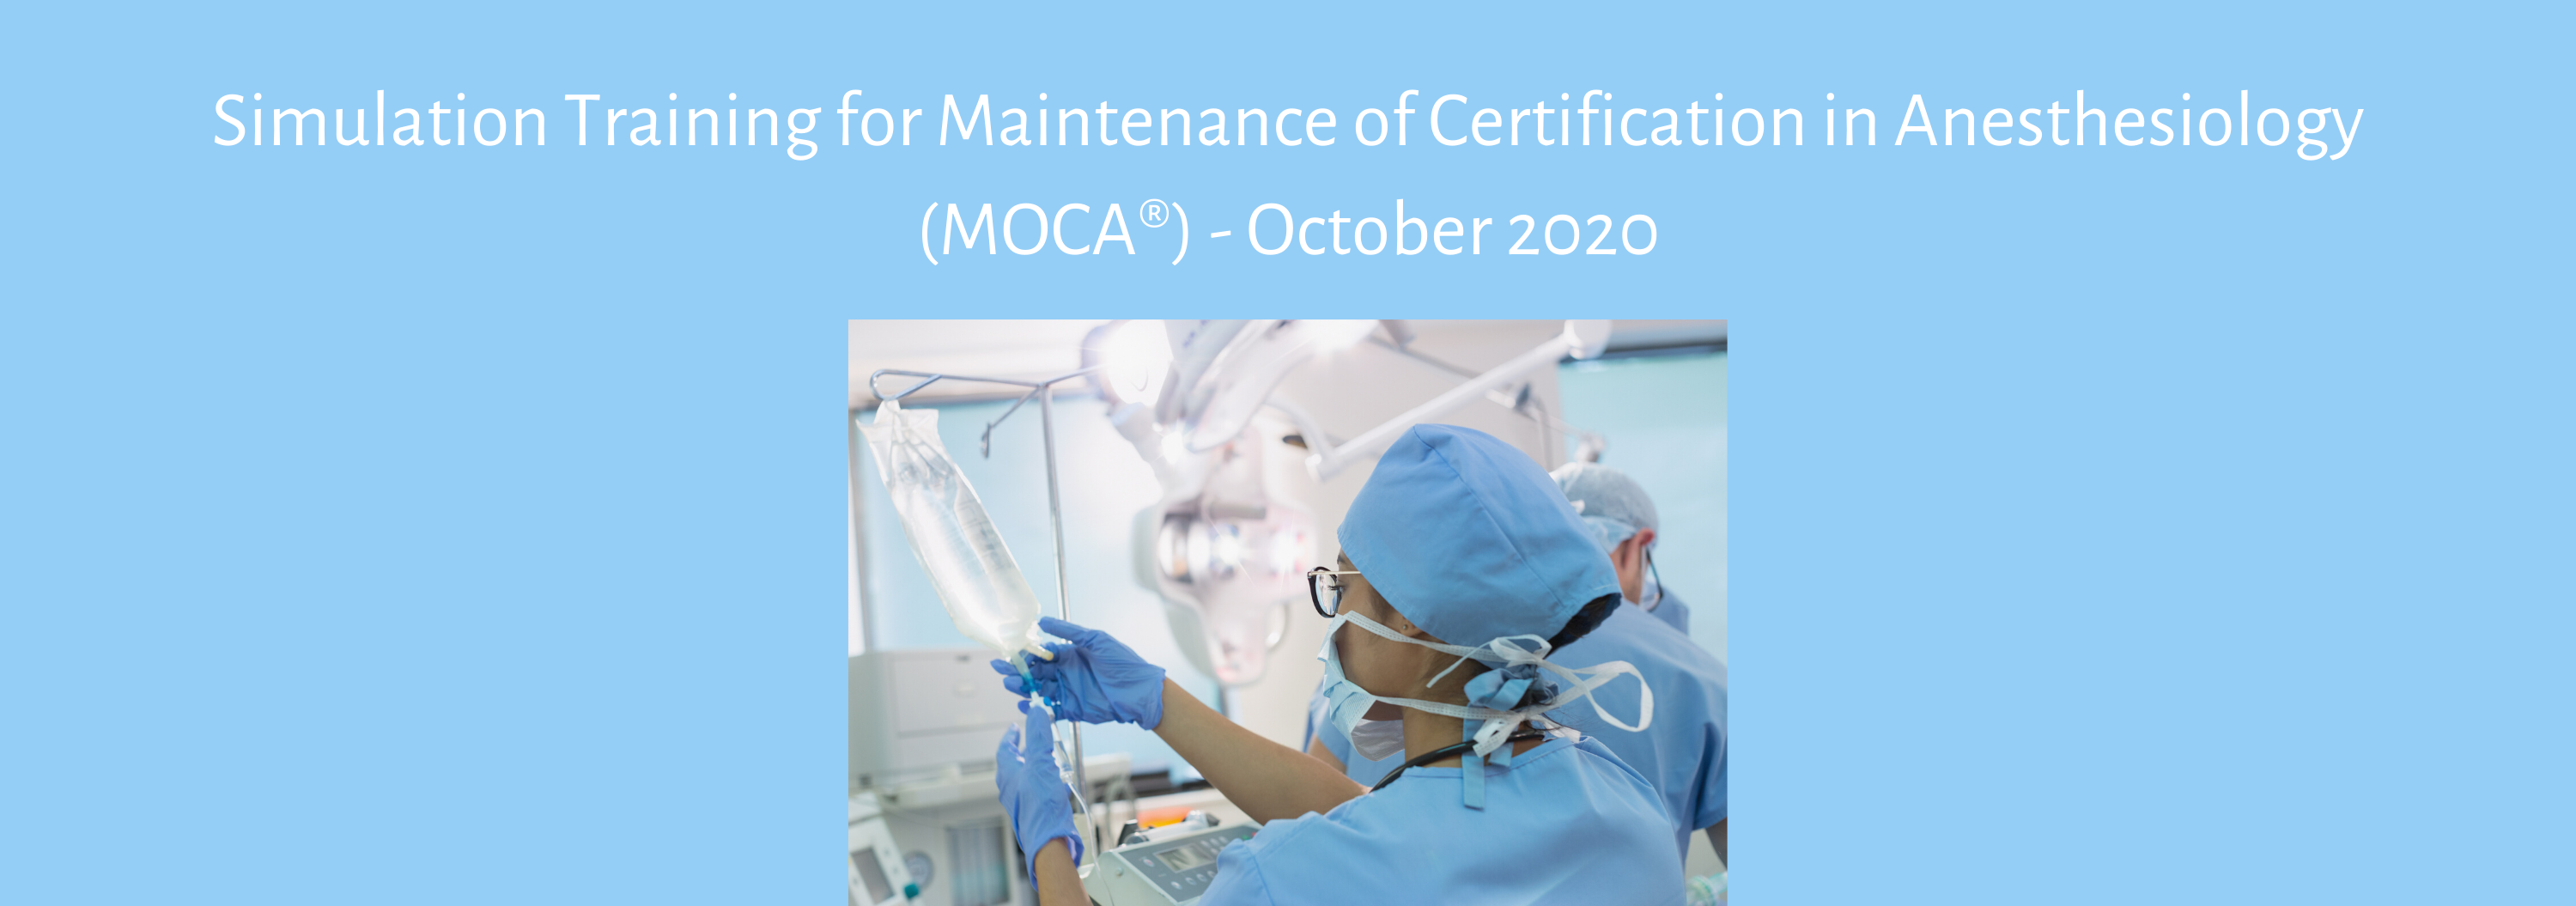 Simulation Training for Maintenance of Certification in Anesthesiology (MOCA) Oct. 26, 2020 Banner